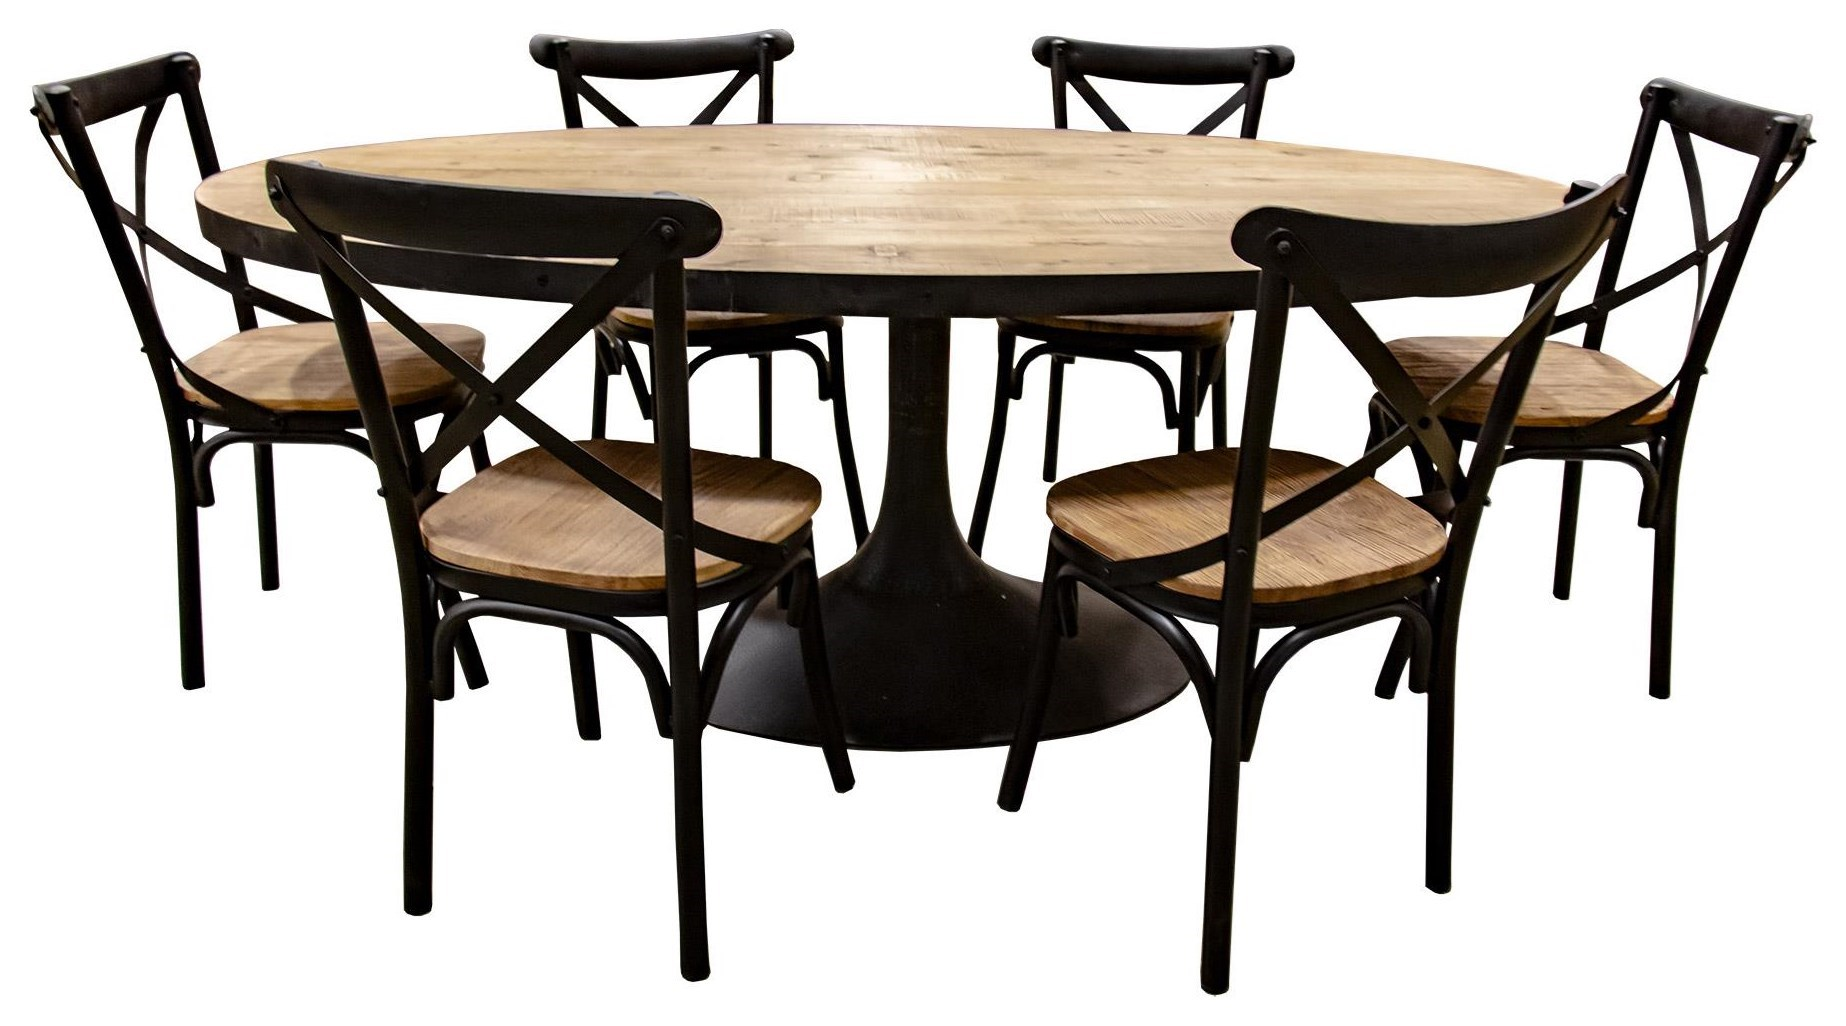 Ordinaire Nest Home Collections Miranda Oval Natural Wood Dining Table With Six Iron  And Wood Chairs